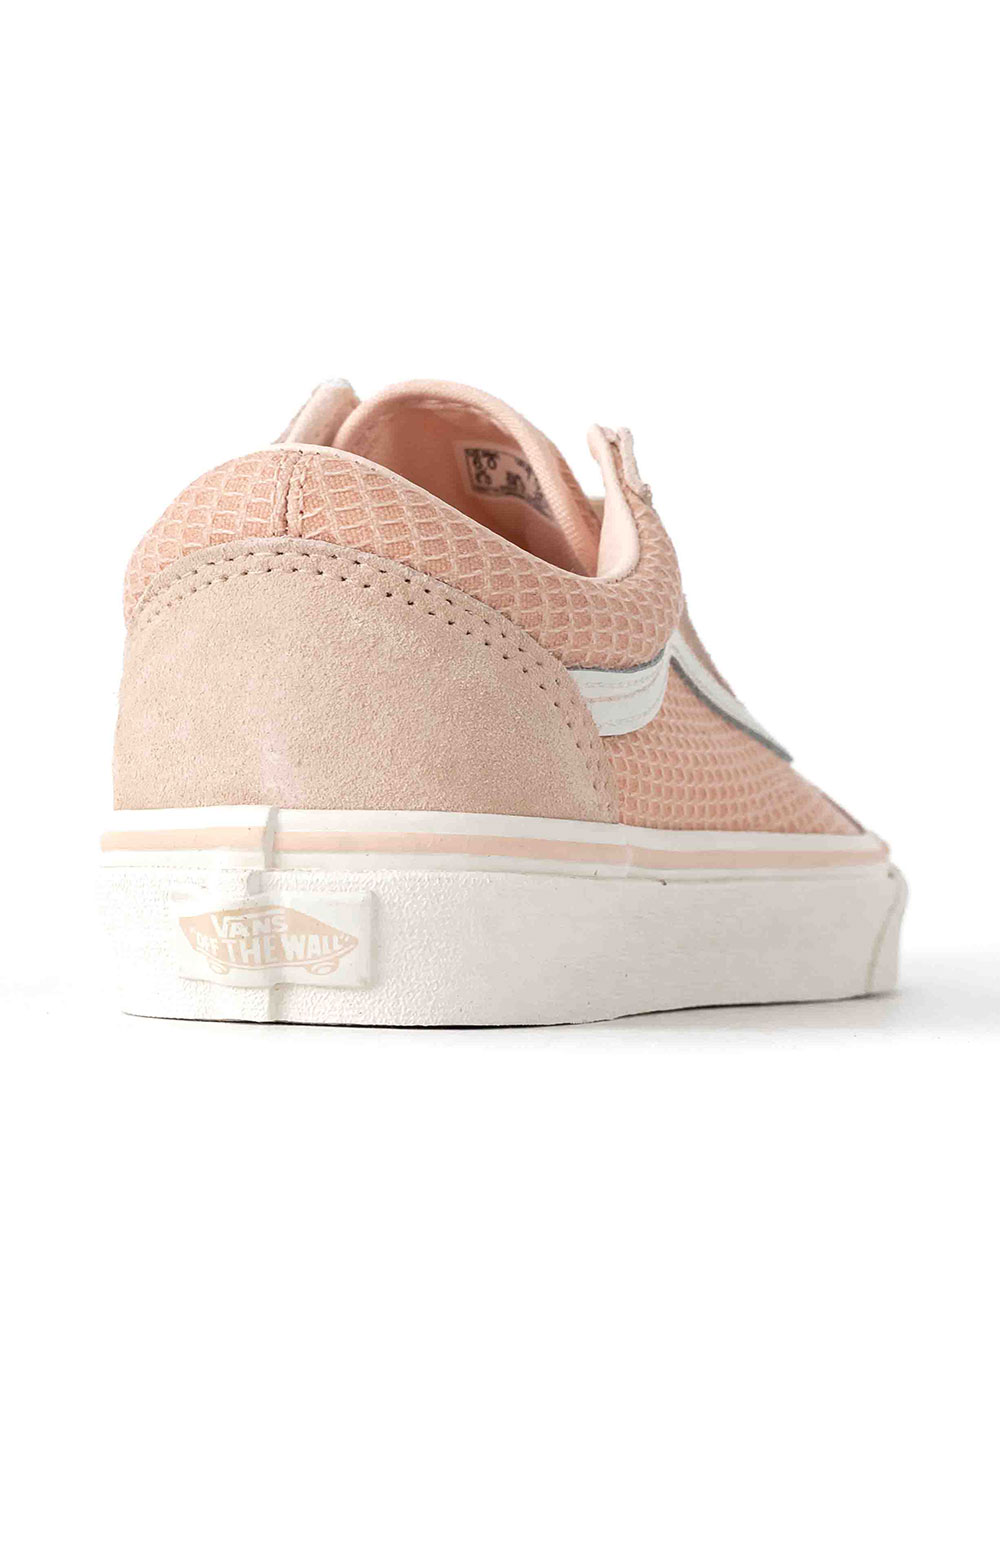 (U3BXF4) Multi Woven Old Skool Shoe - Pink  5